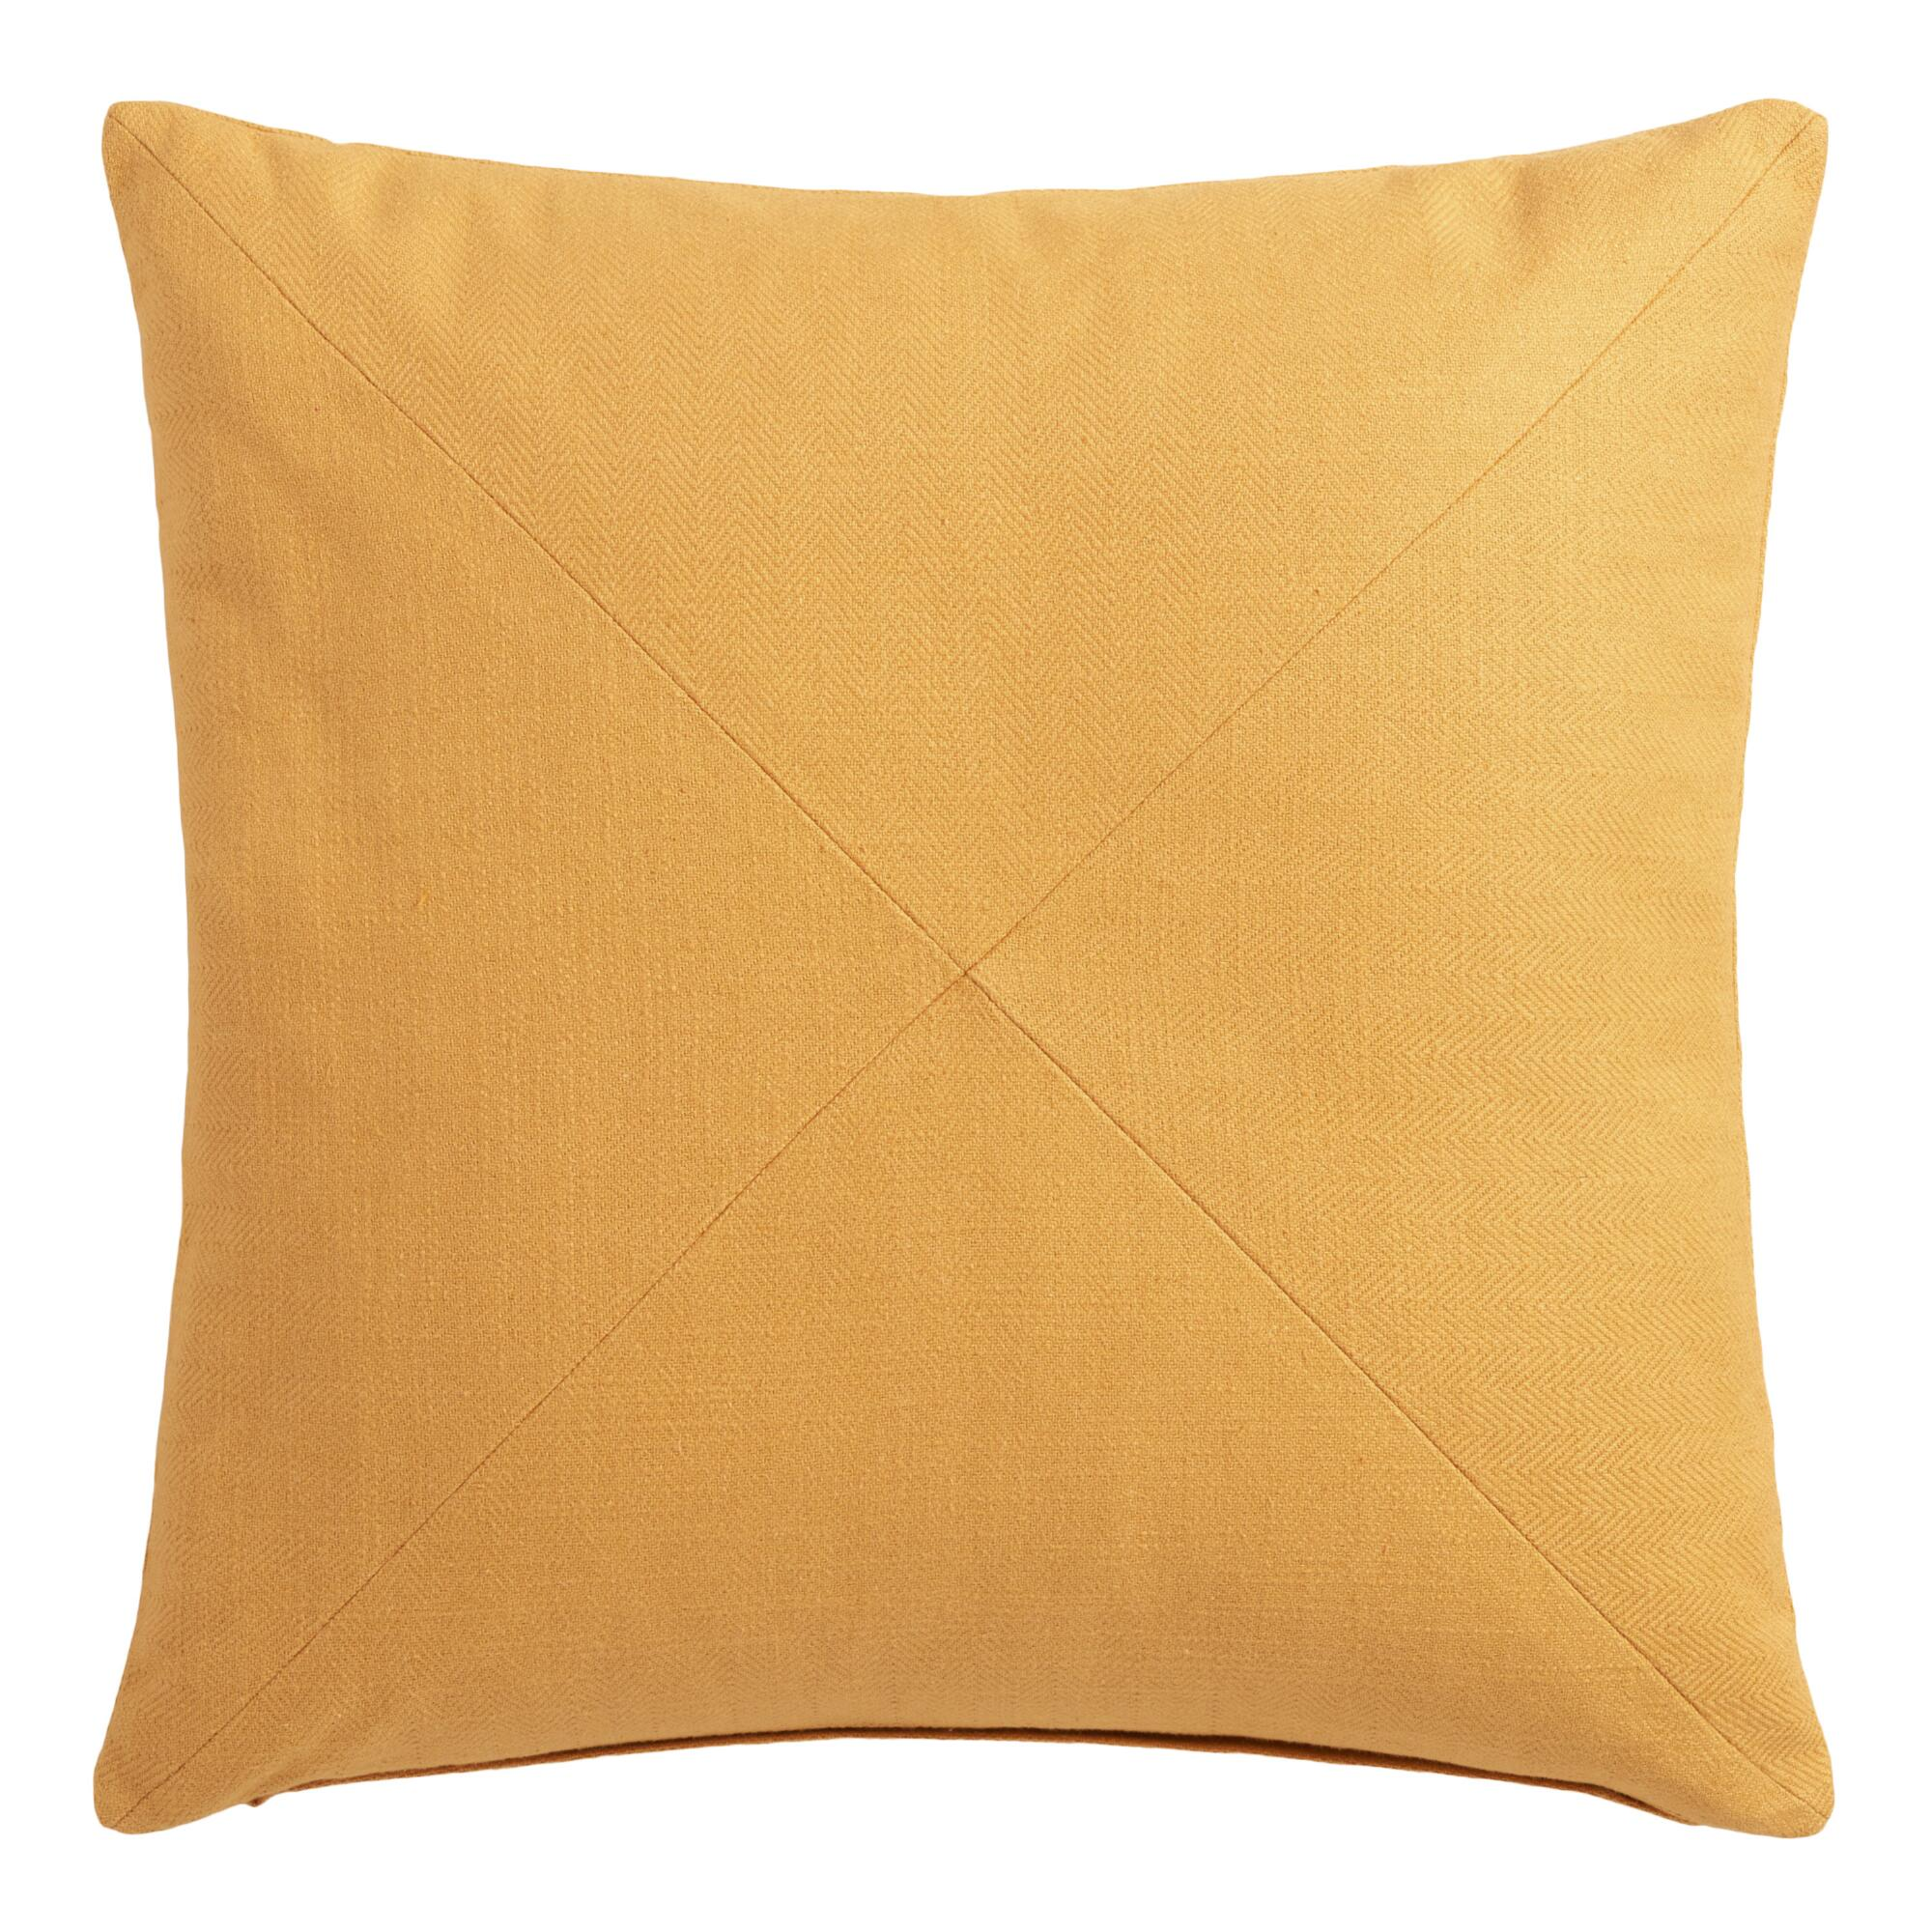 Throw Pillows Gif : Gold Herringbone Cotton Throw Pillow World Market